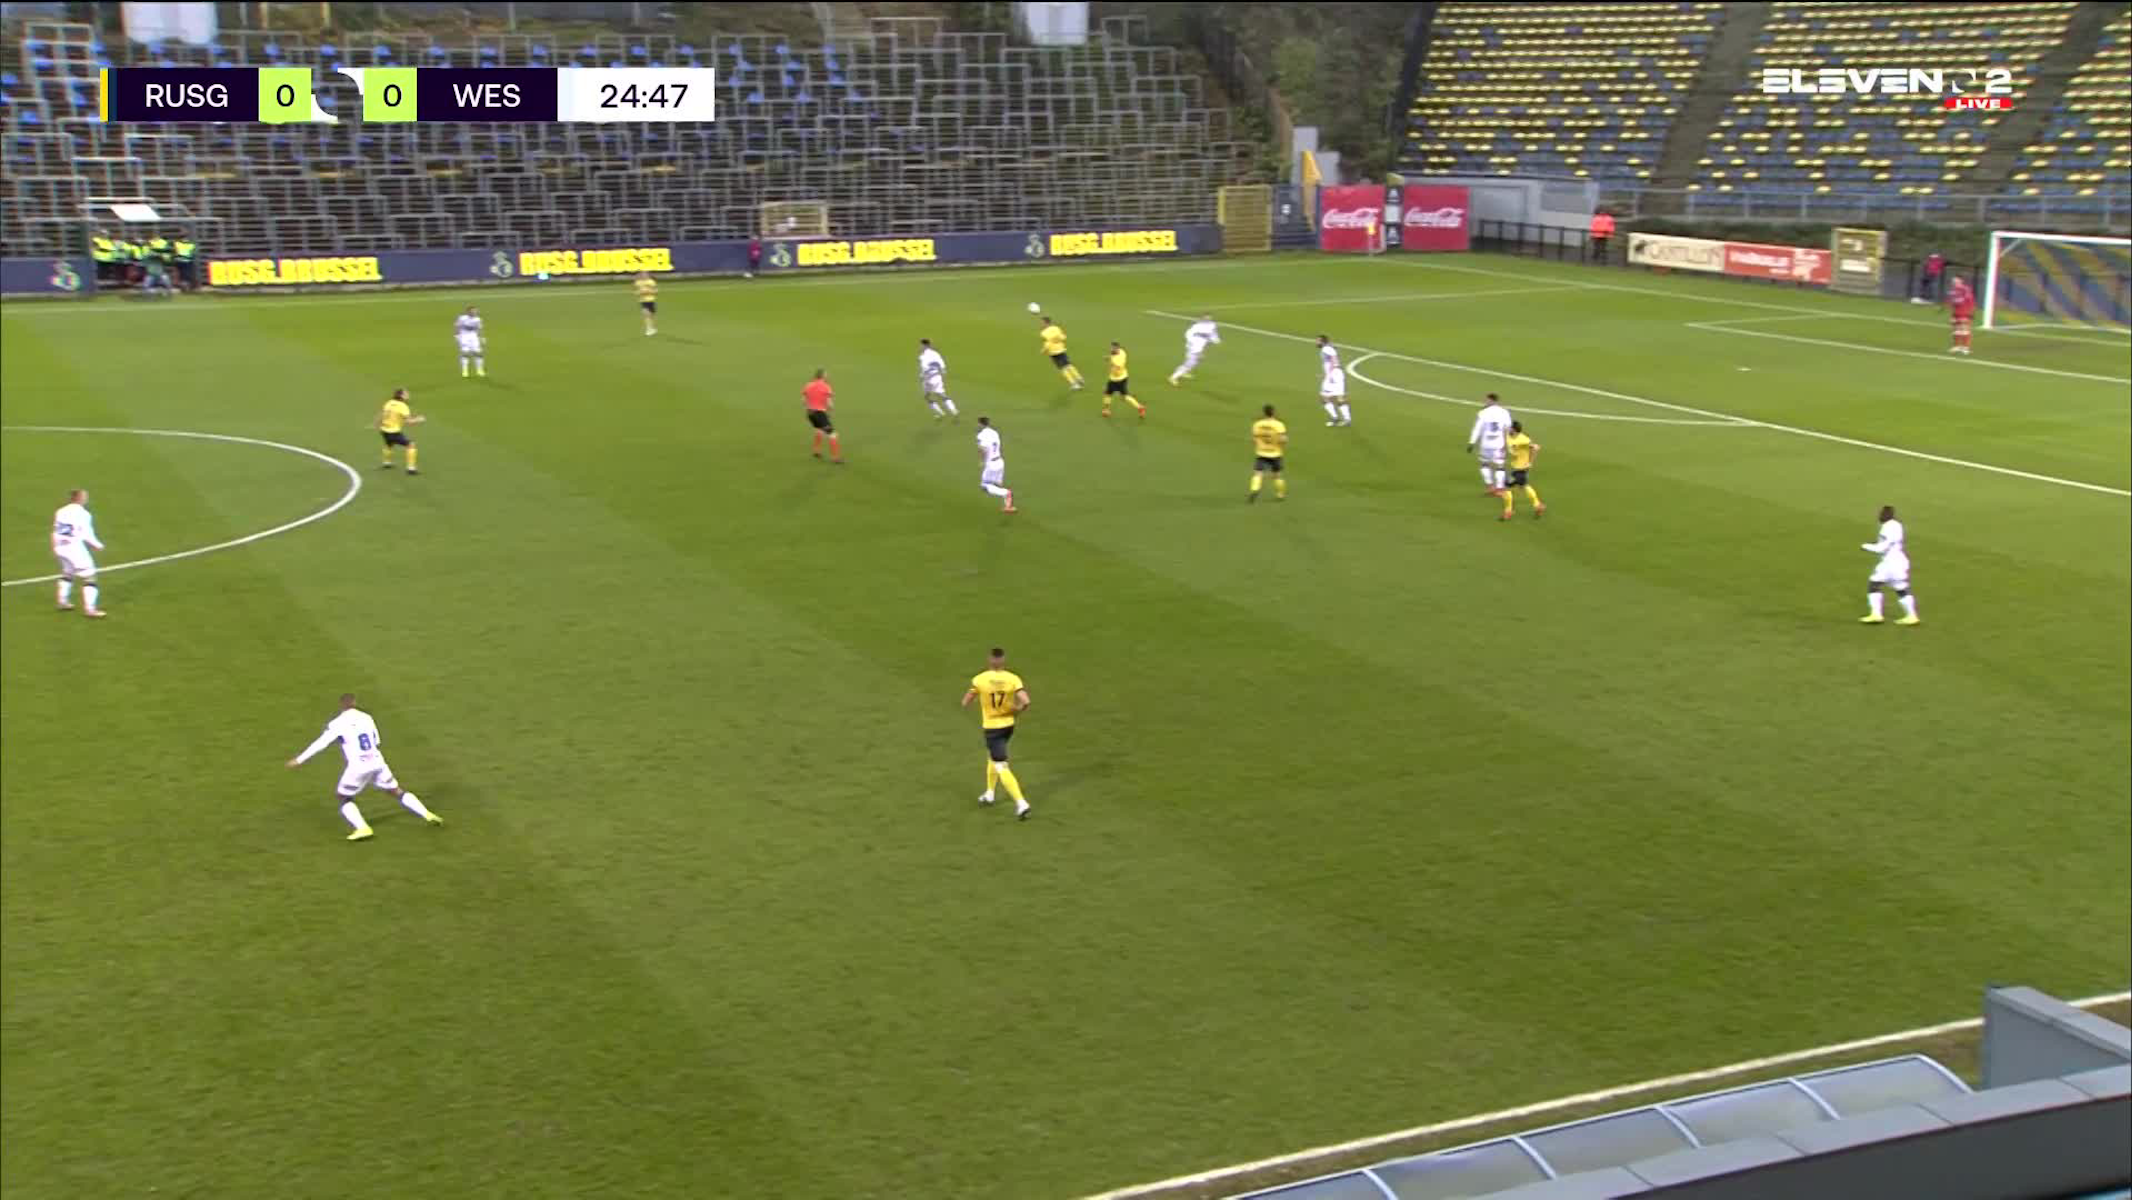 But Atabey Cicek (Royale Union Saint-Gilloise vs. KVC Westerlo)